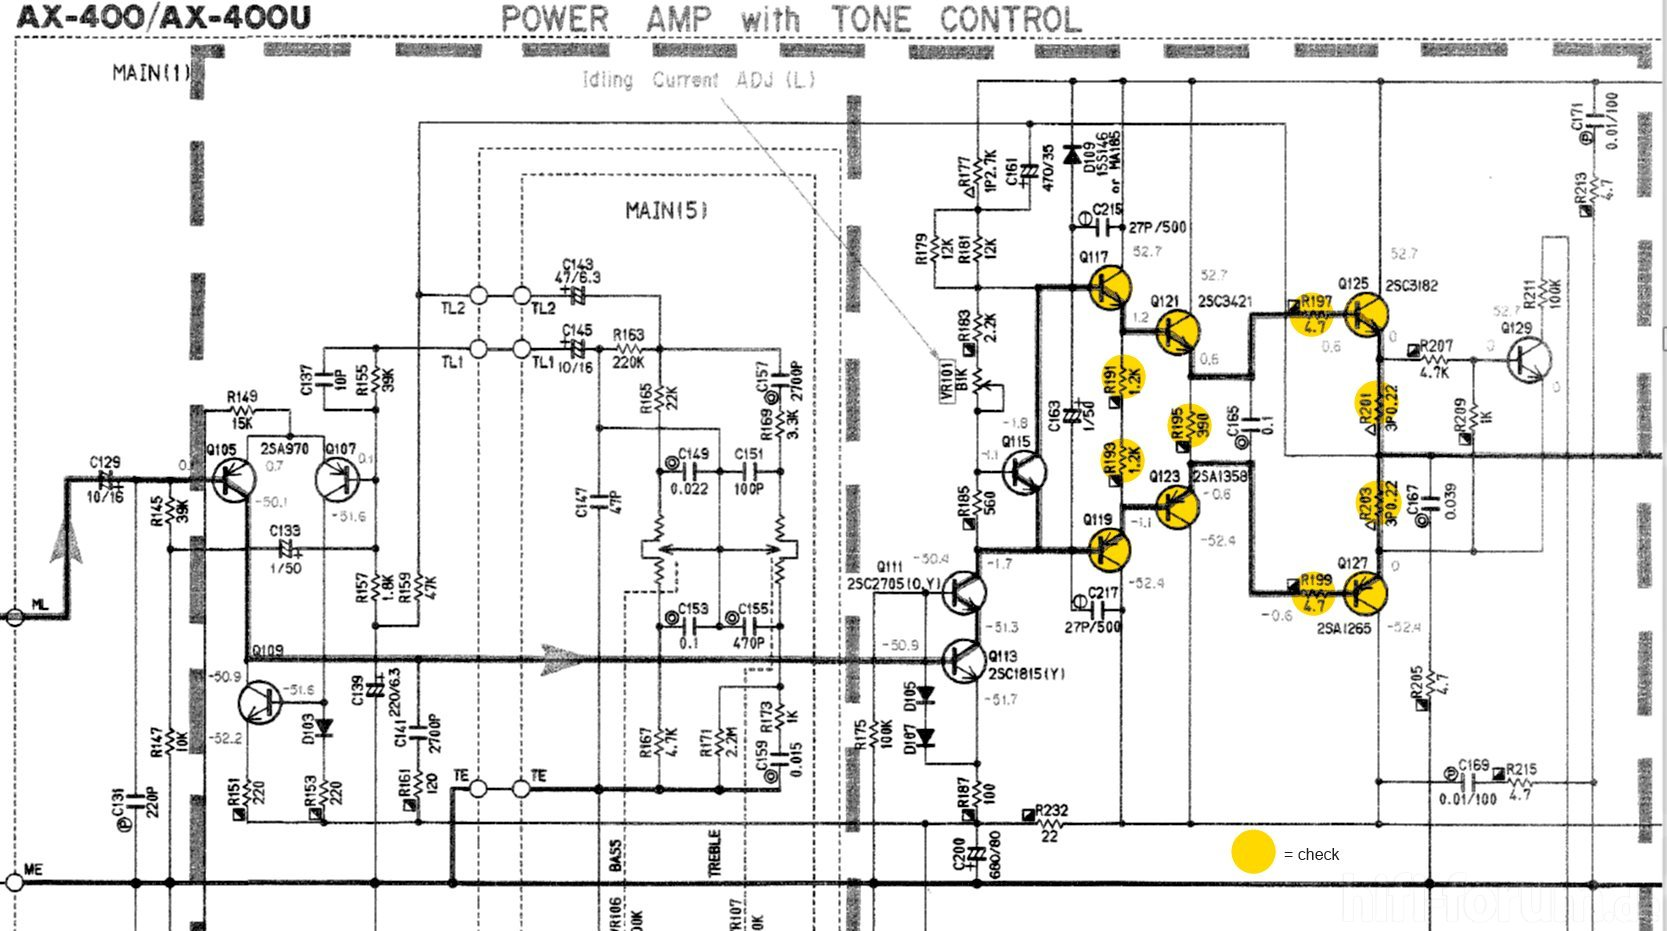 hight resolution of yamaha amp schematic wiring diagram yamaha amp schematics yamaha amp schematic